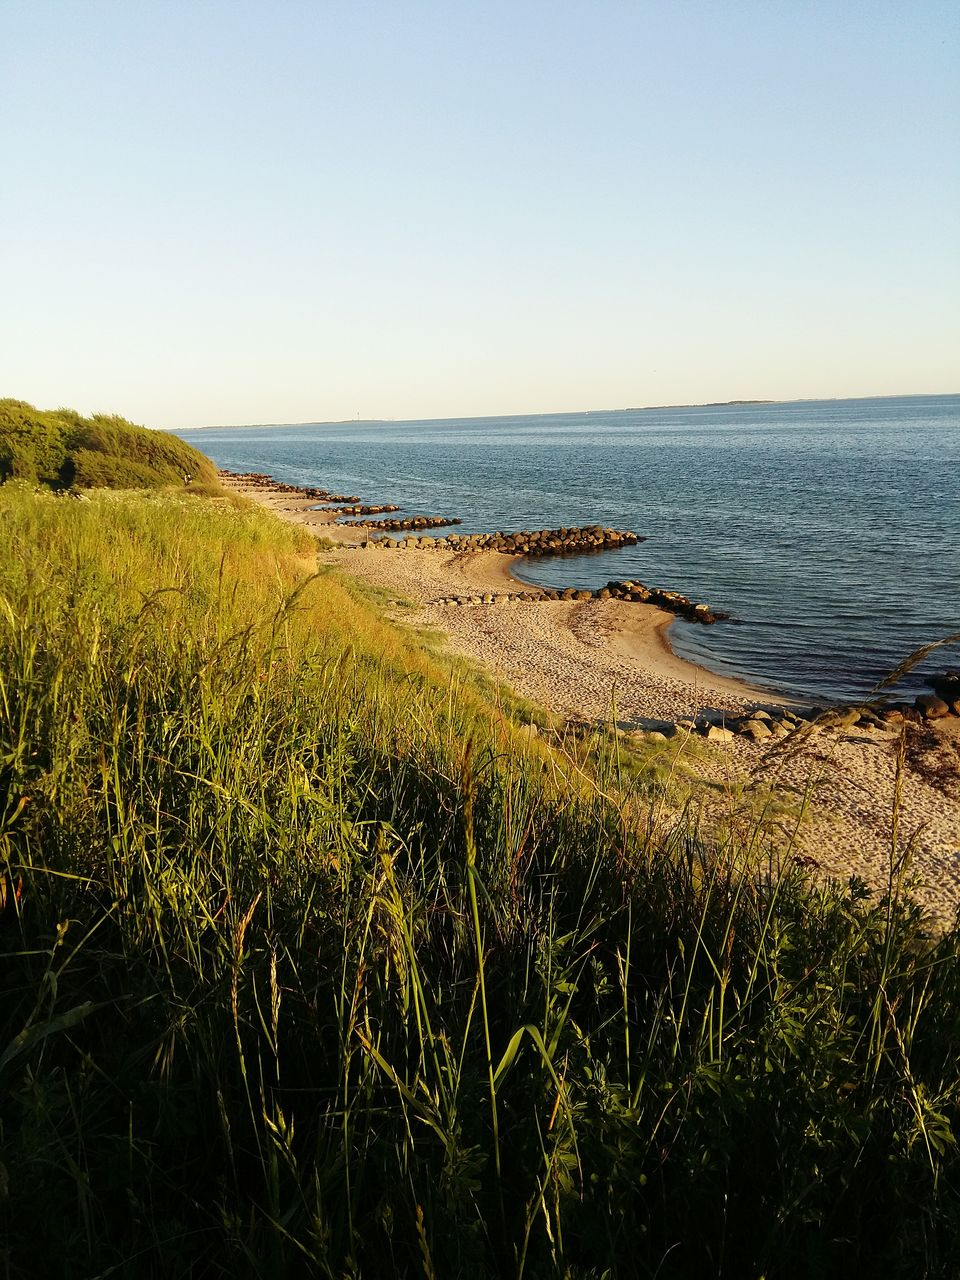 sea, nature, water, tranquil scene, scenics, tranquility, beauty in nature, clear sky, horizon over water, grass, outdoors, landscape, growth, no people, day, beach, sky